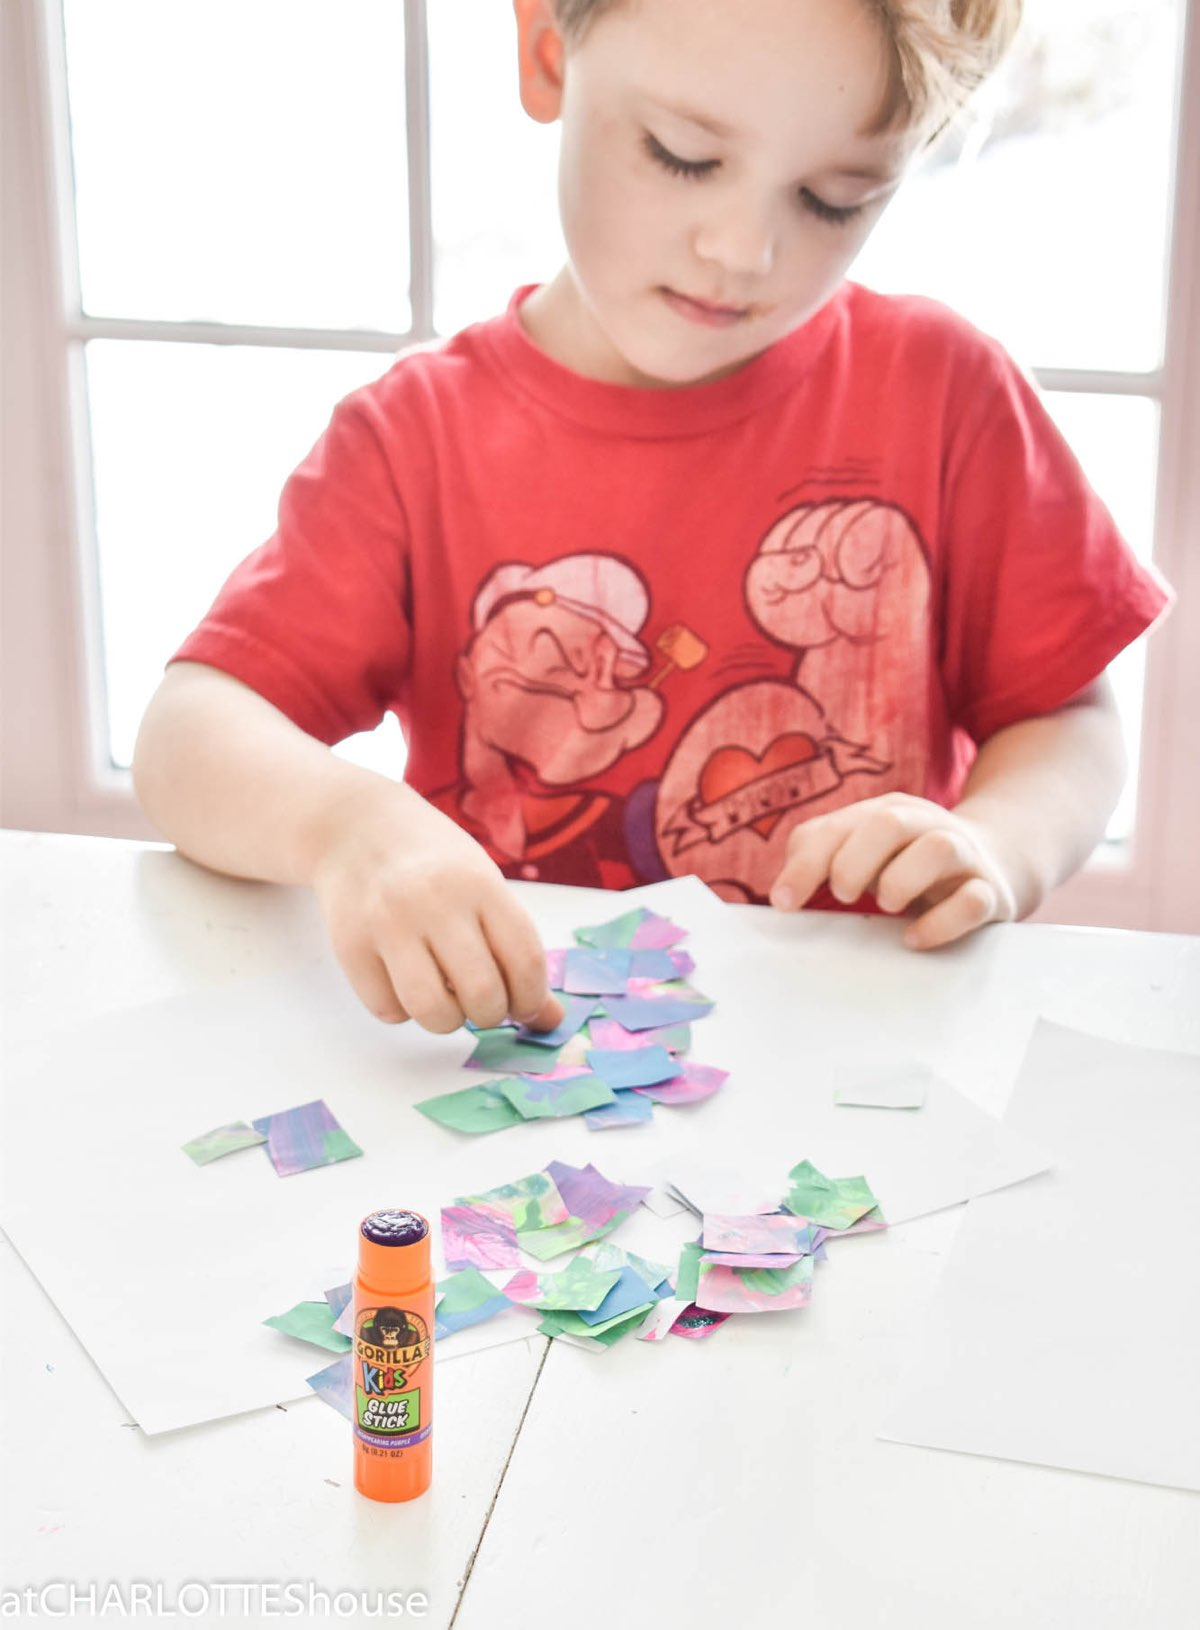 Young boy using Gorilla Glue Stick with small pieces of paper